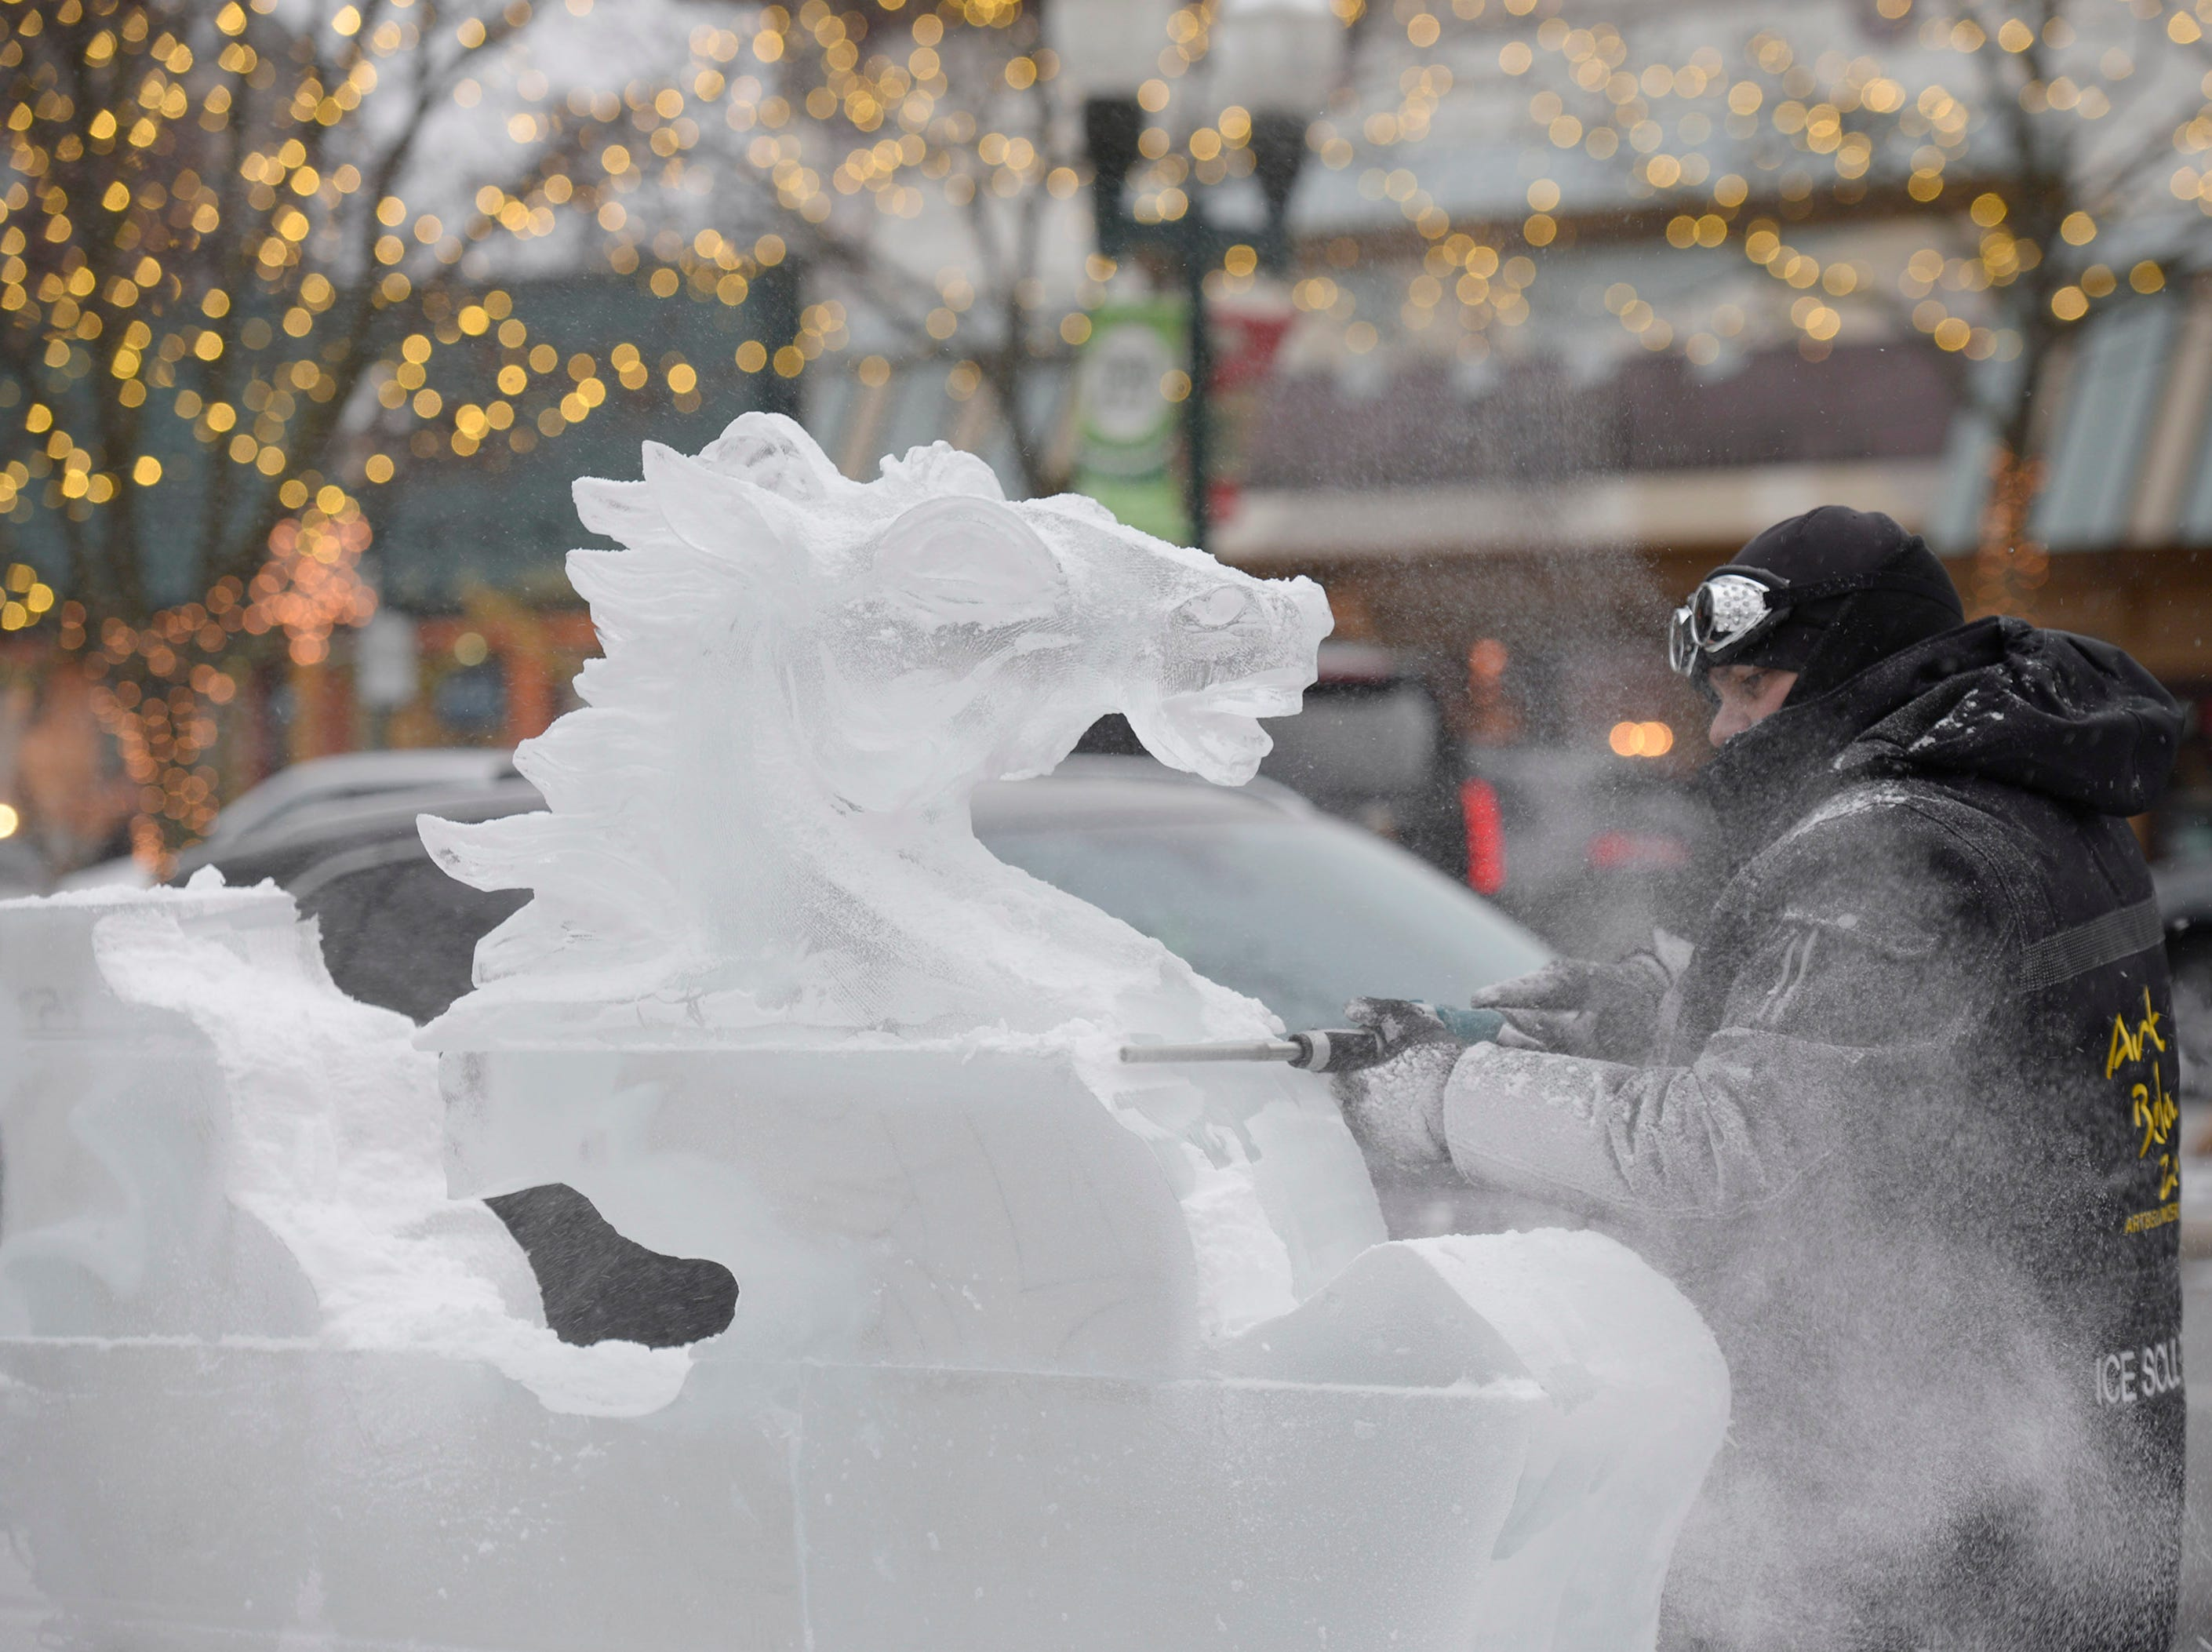 With the head carved by Aaron Costic now on more blocks of ice, Max Zuleta from Elegant Ice Creations continues to the carve a sculpture that will use 14 blocks of ice when it is all done.